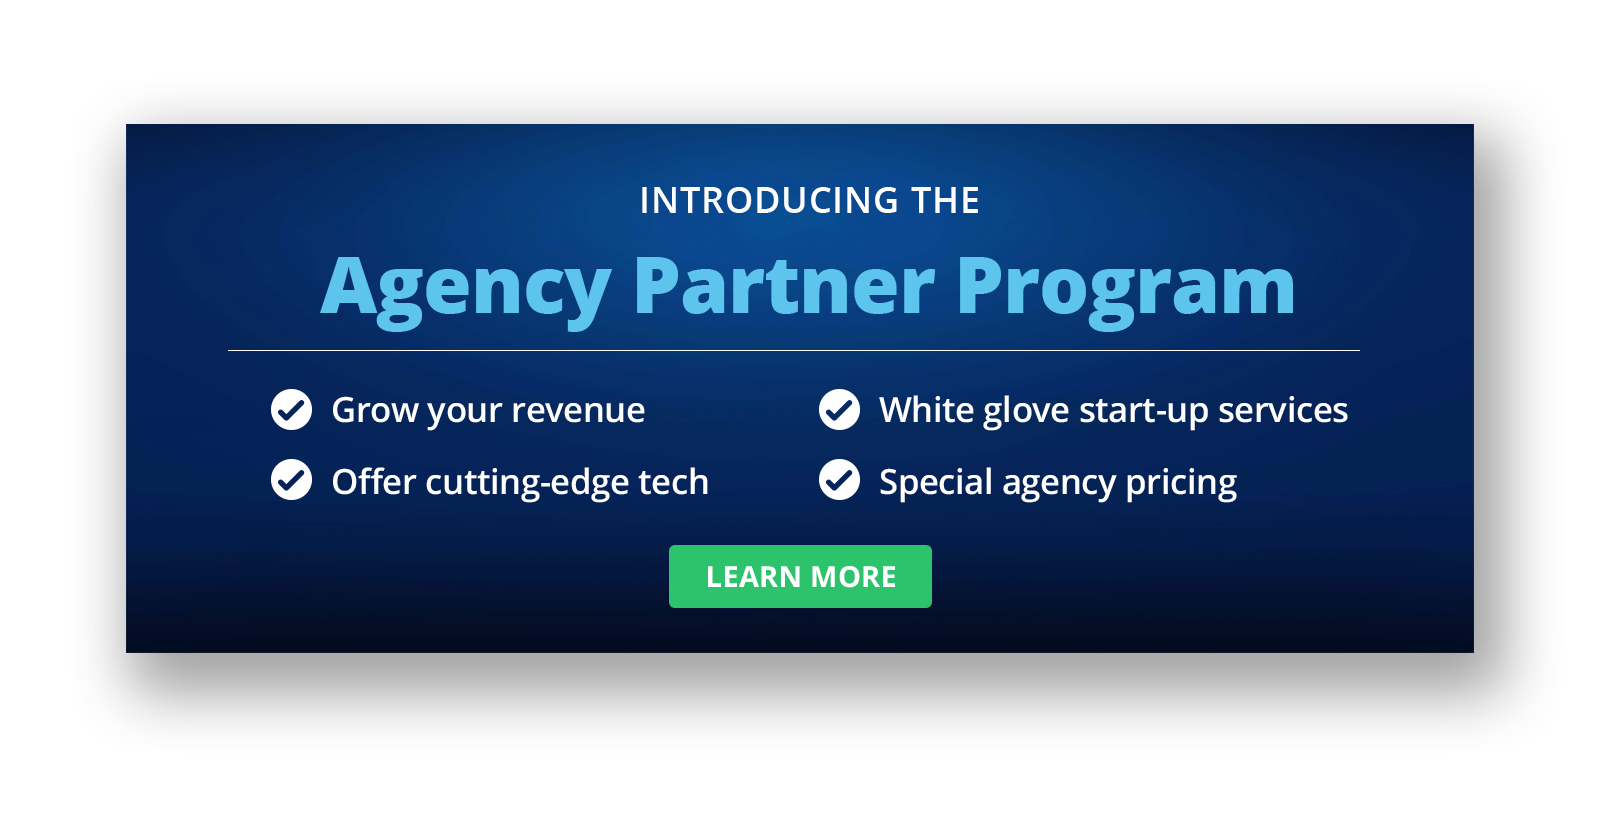 Agency Partner Program